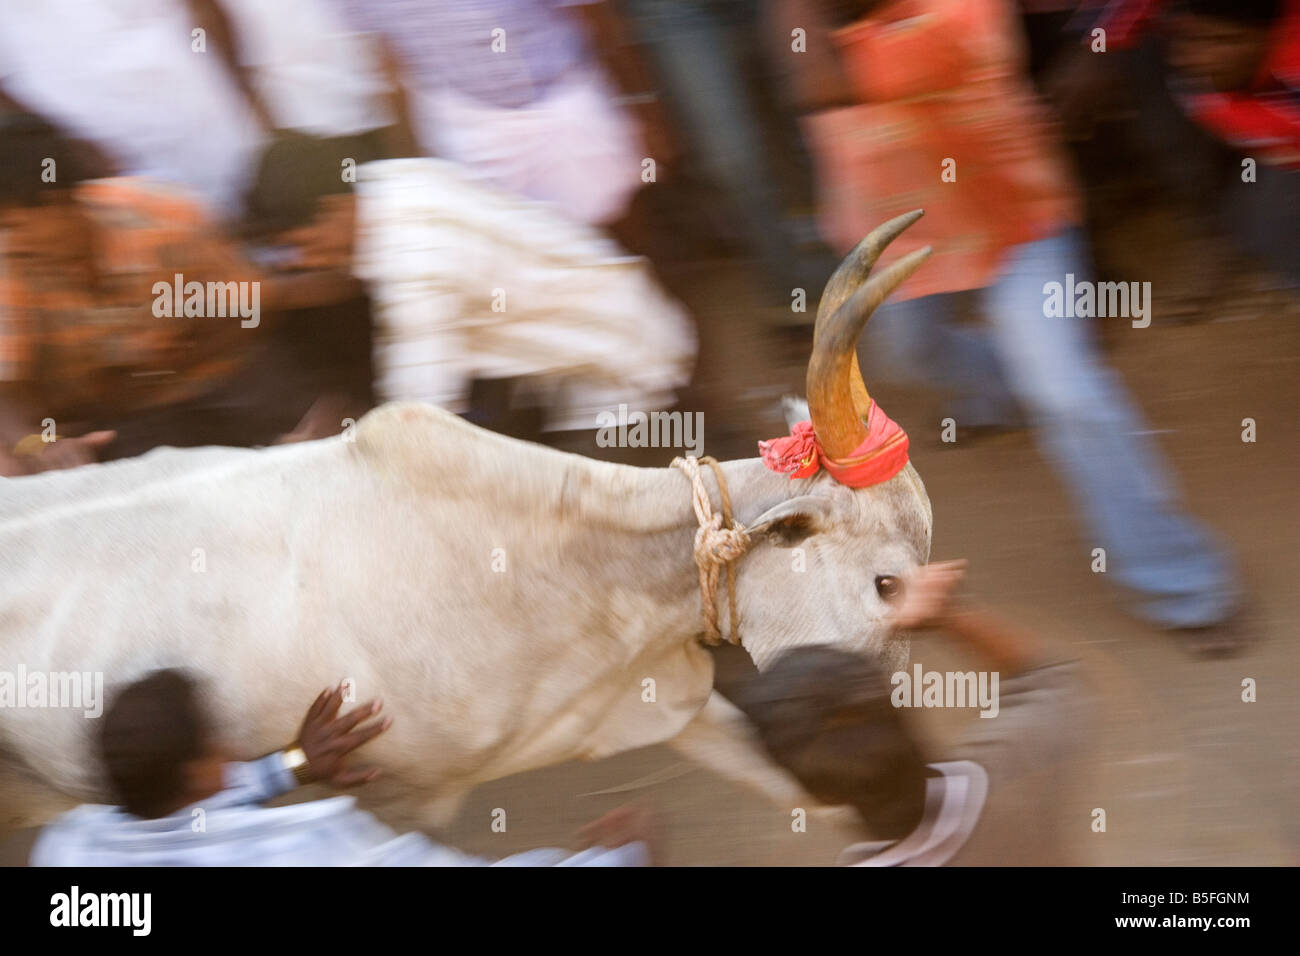 A bull races through the street of a Tamil Nadu village as part of Pongal festivities. - Stock Image